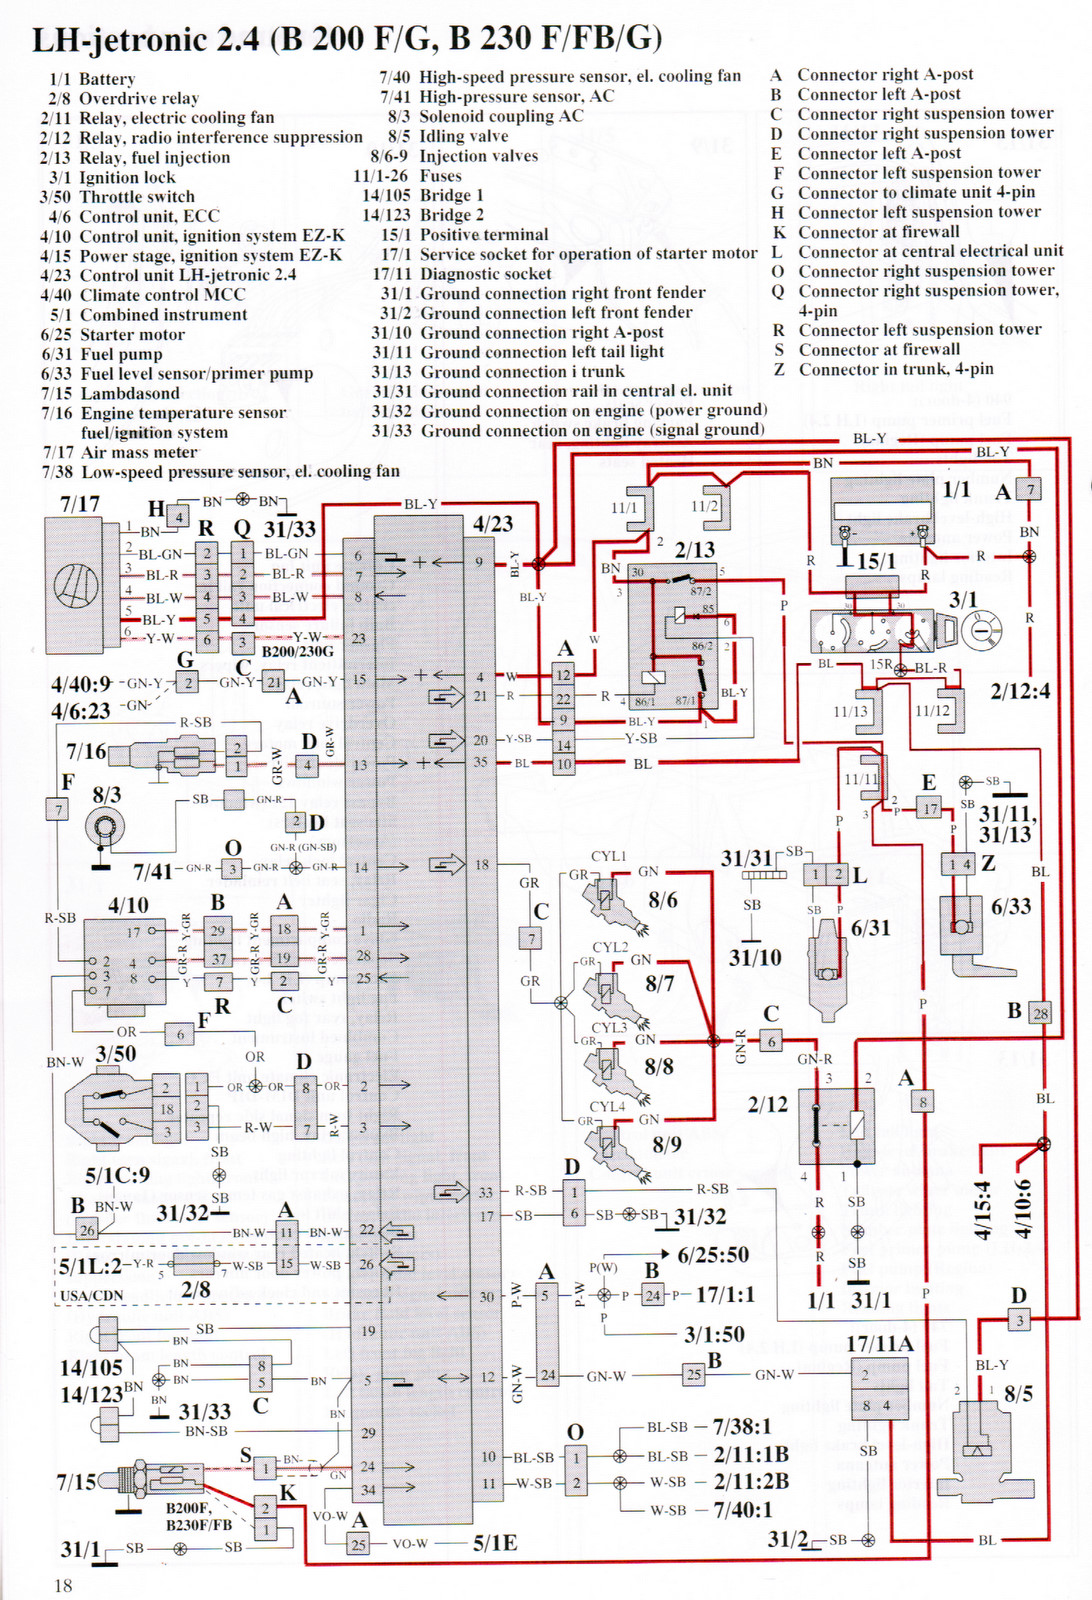 Wiring Diagram 1991 Volvo 740 Turbo Diagrams Truck Engine Fuel System Free Image For 240